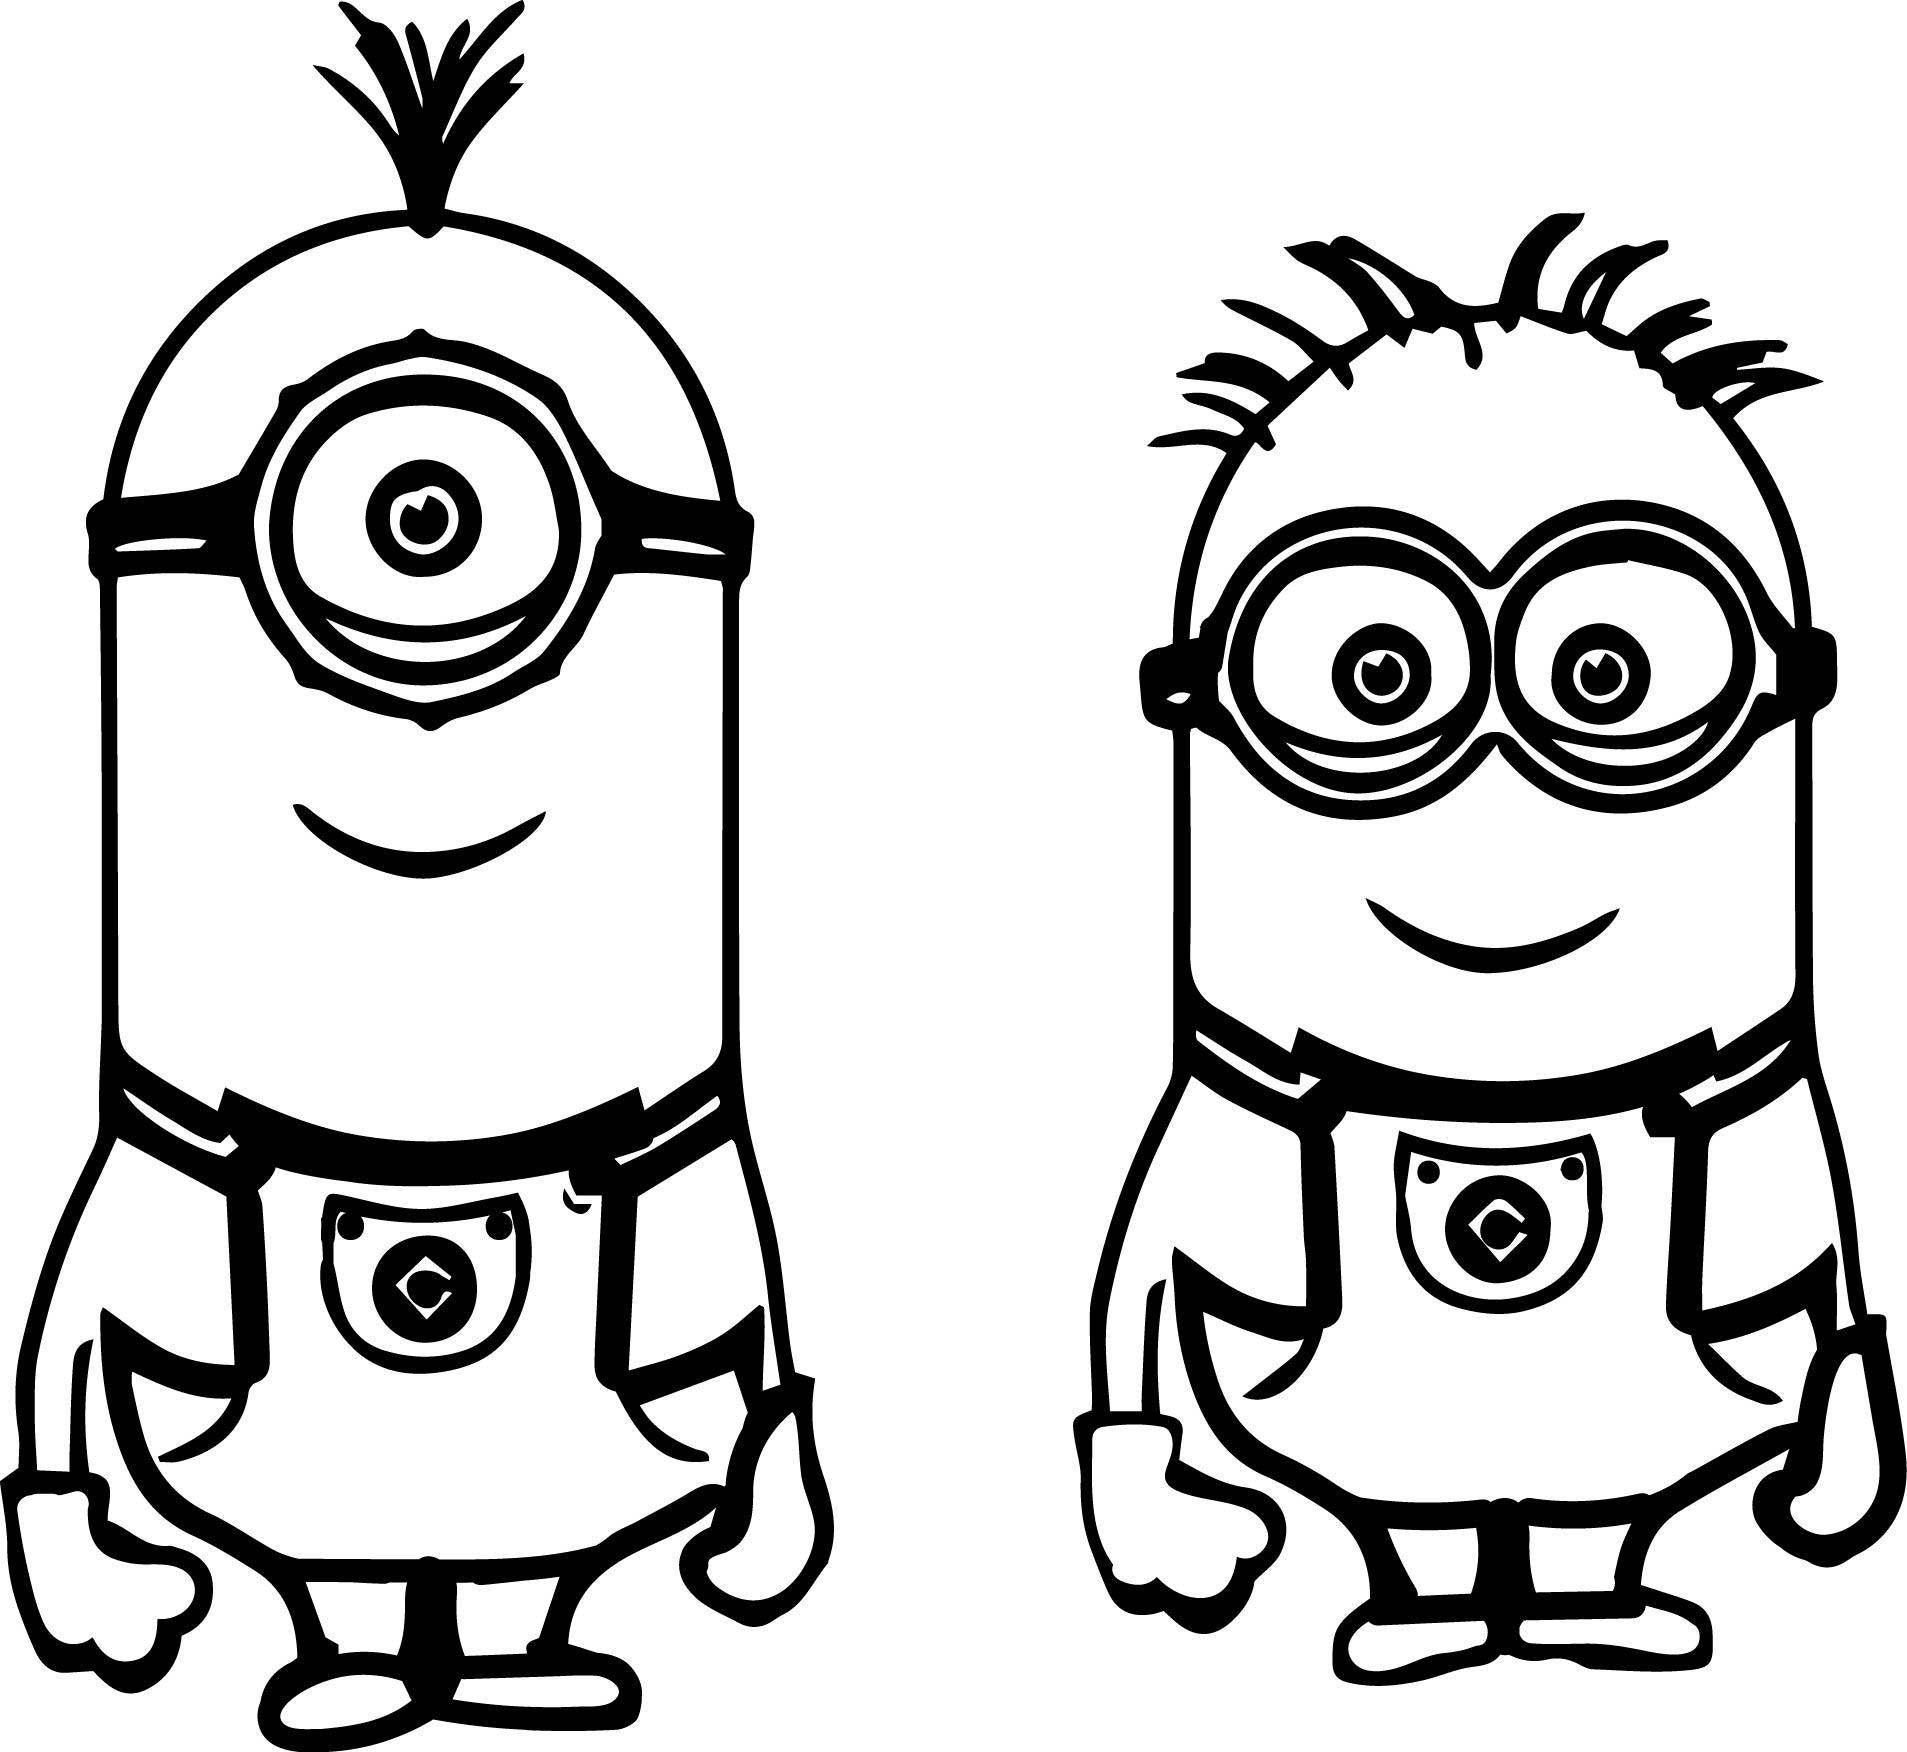 minion color sheets minion coloring pages free download best minion coloring sheets minion color